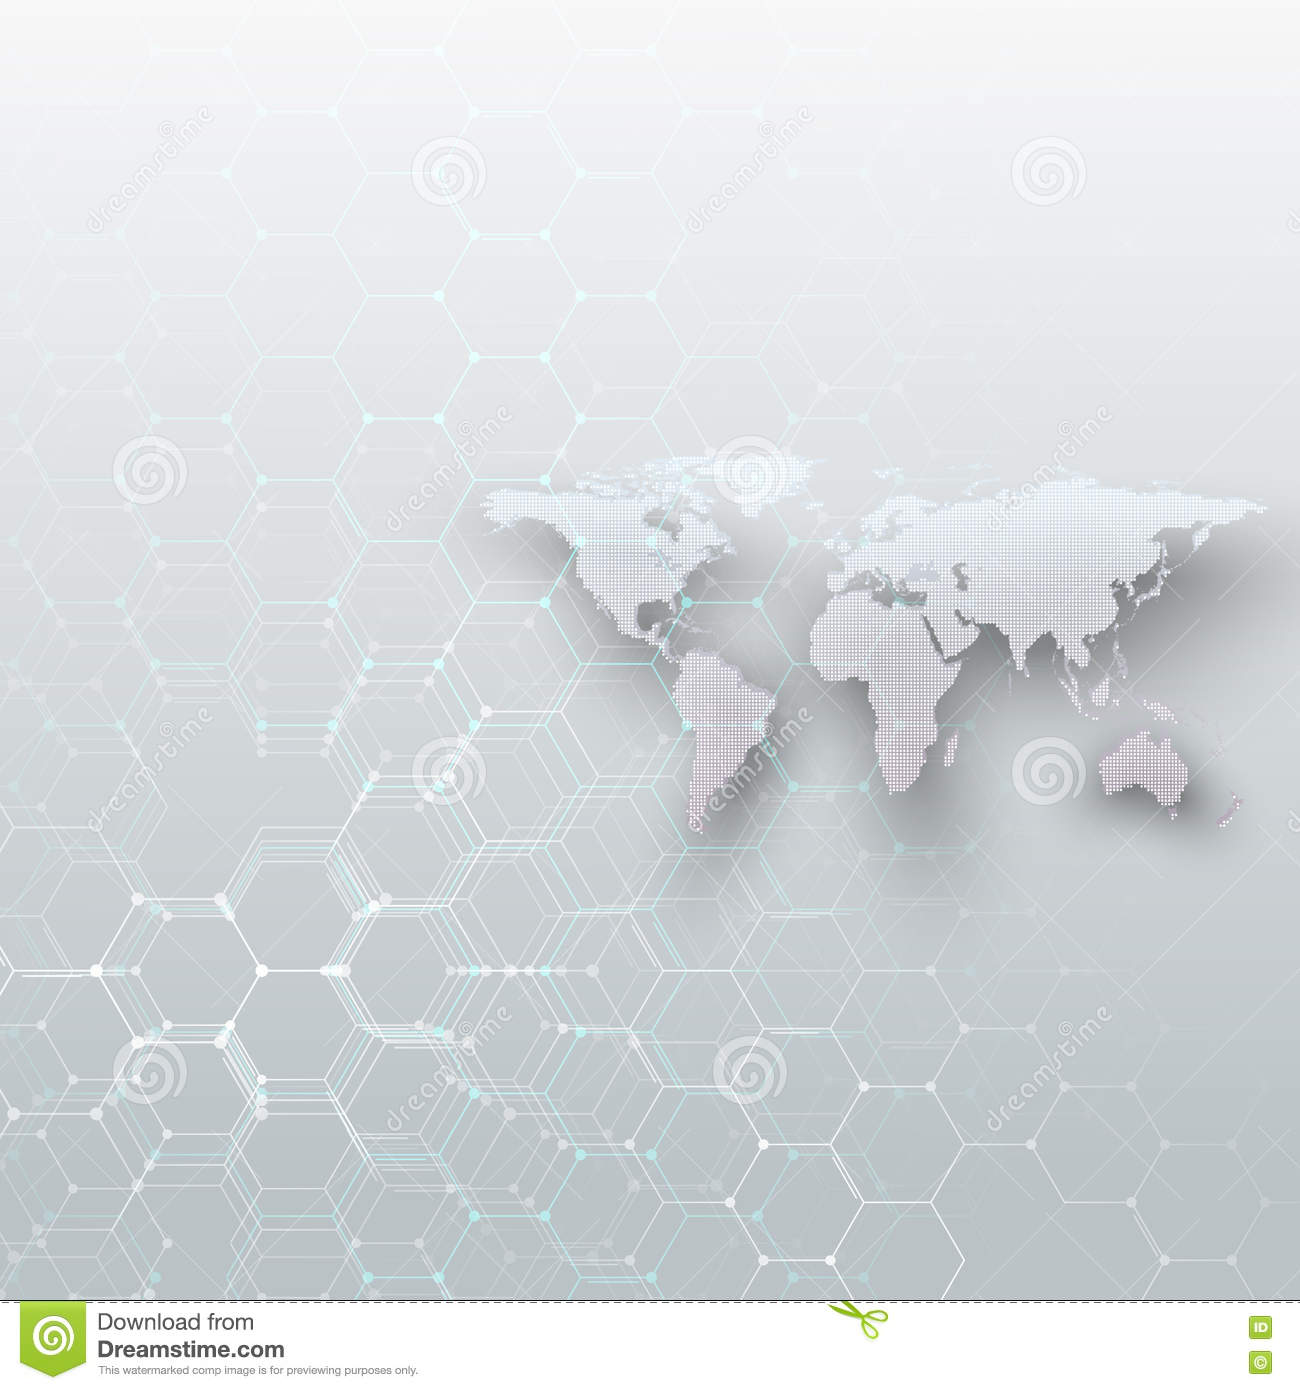 White dotted world map connecting lines and dots on gray color white dotted world map connecting lines and dots on gray color background chemistry pattern hexagonal molecule gumiabroncs Image collections